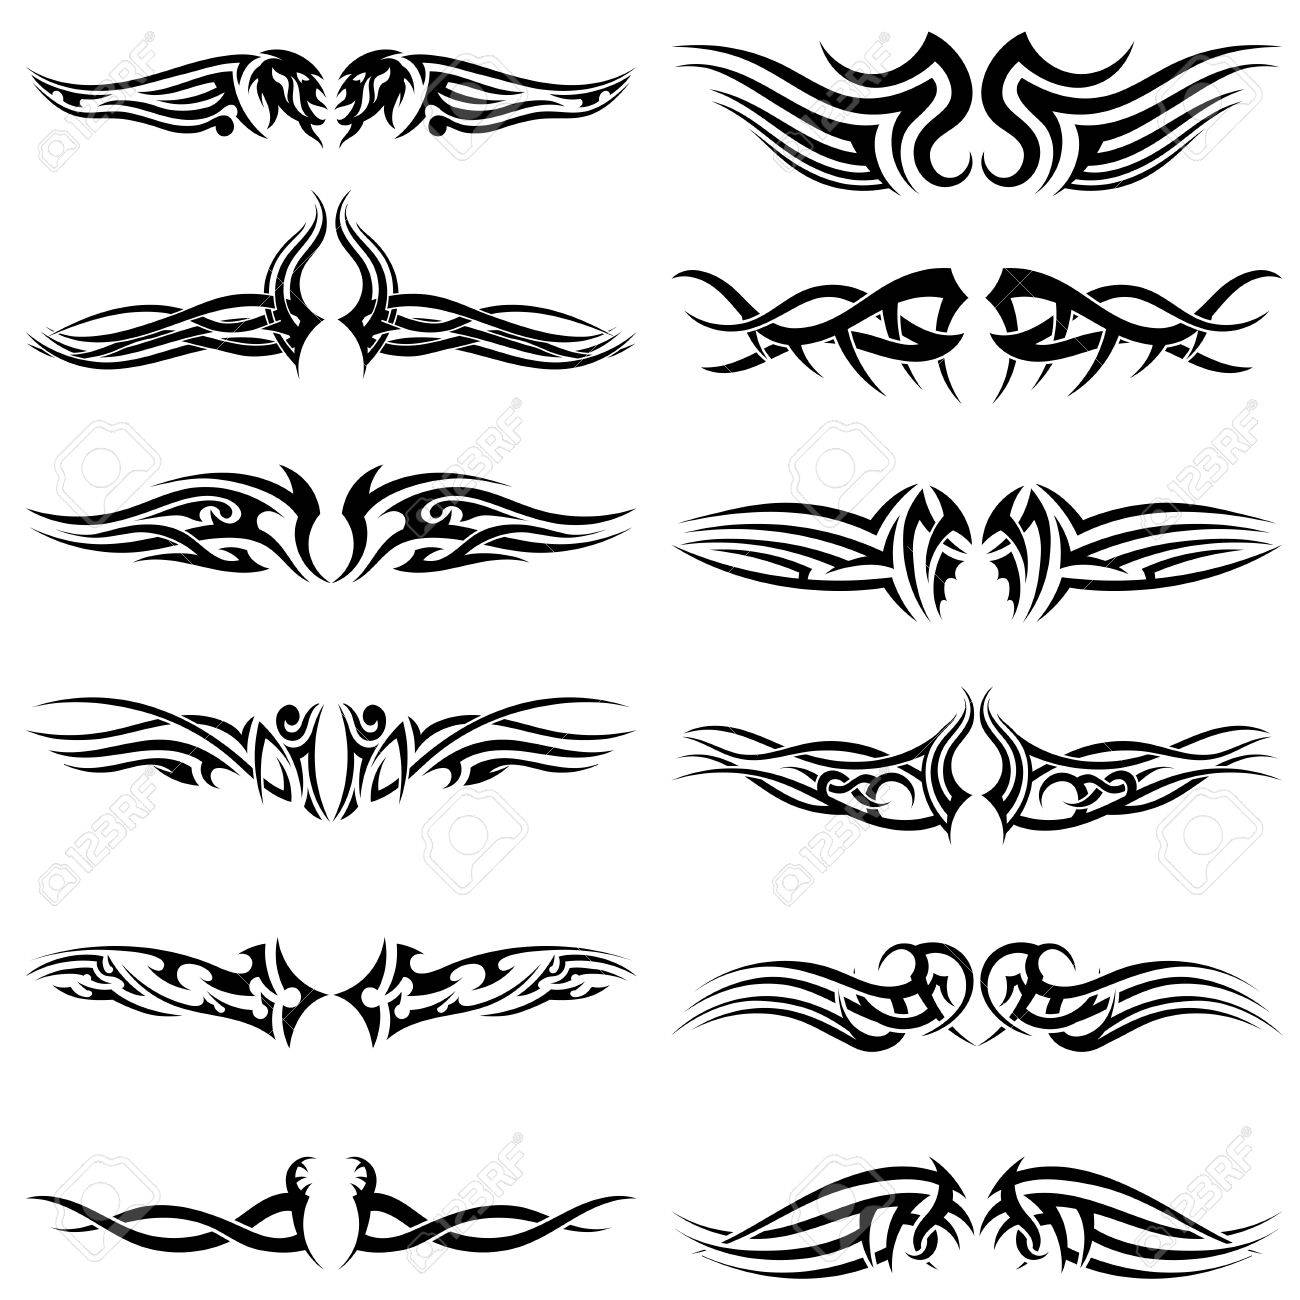 Set of tribal tattoos. EPS 10 vector illustration without transparency. - 36206729